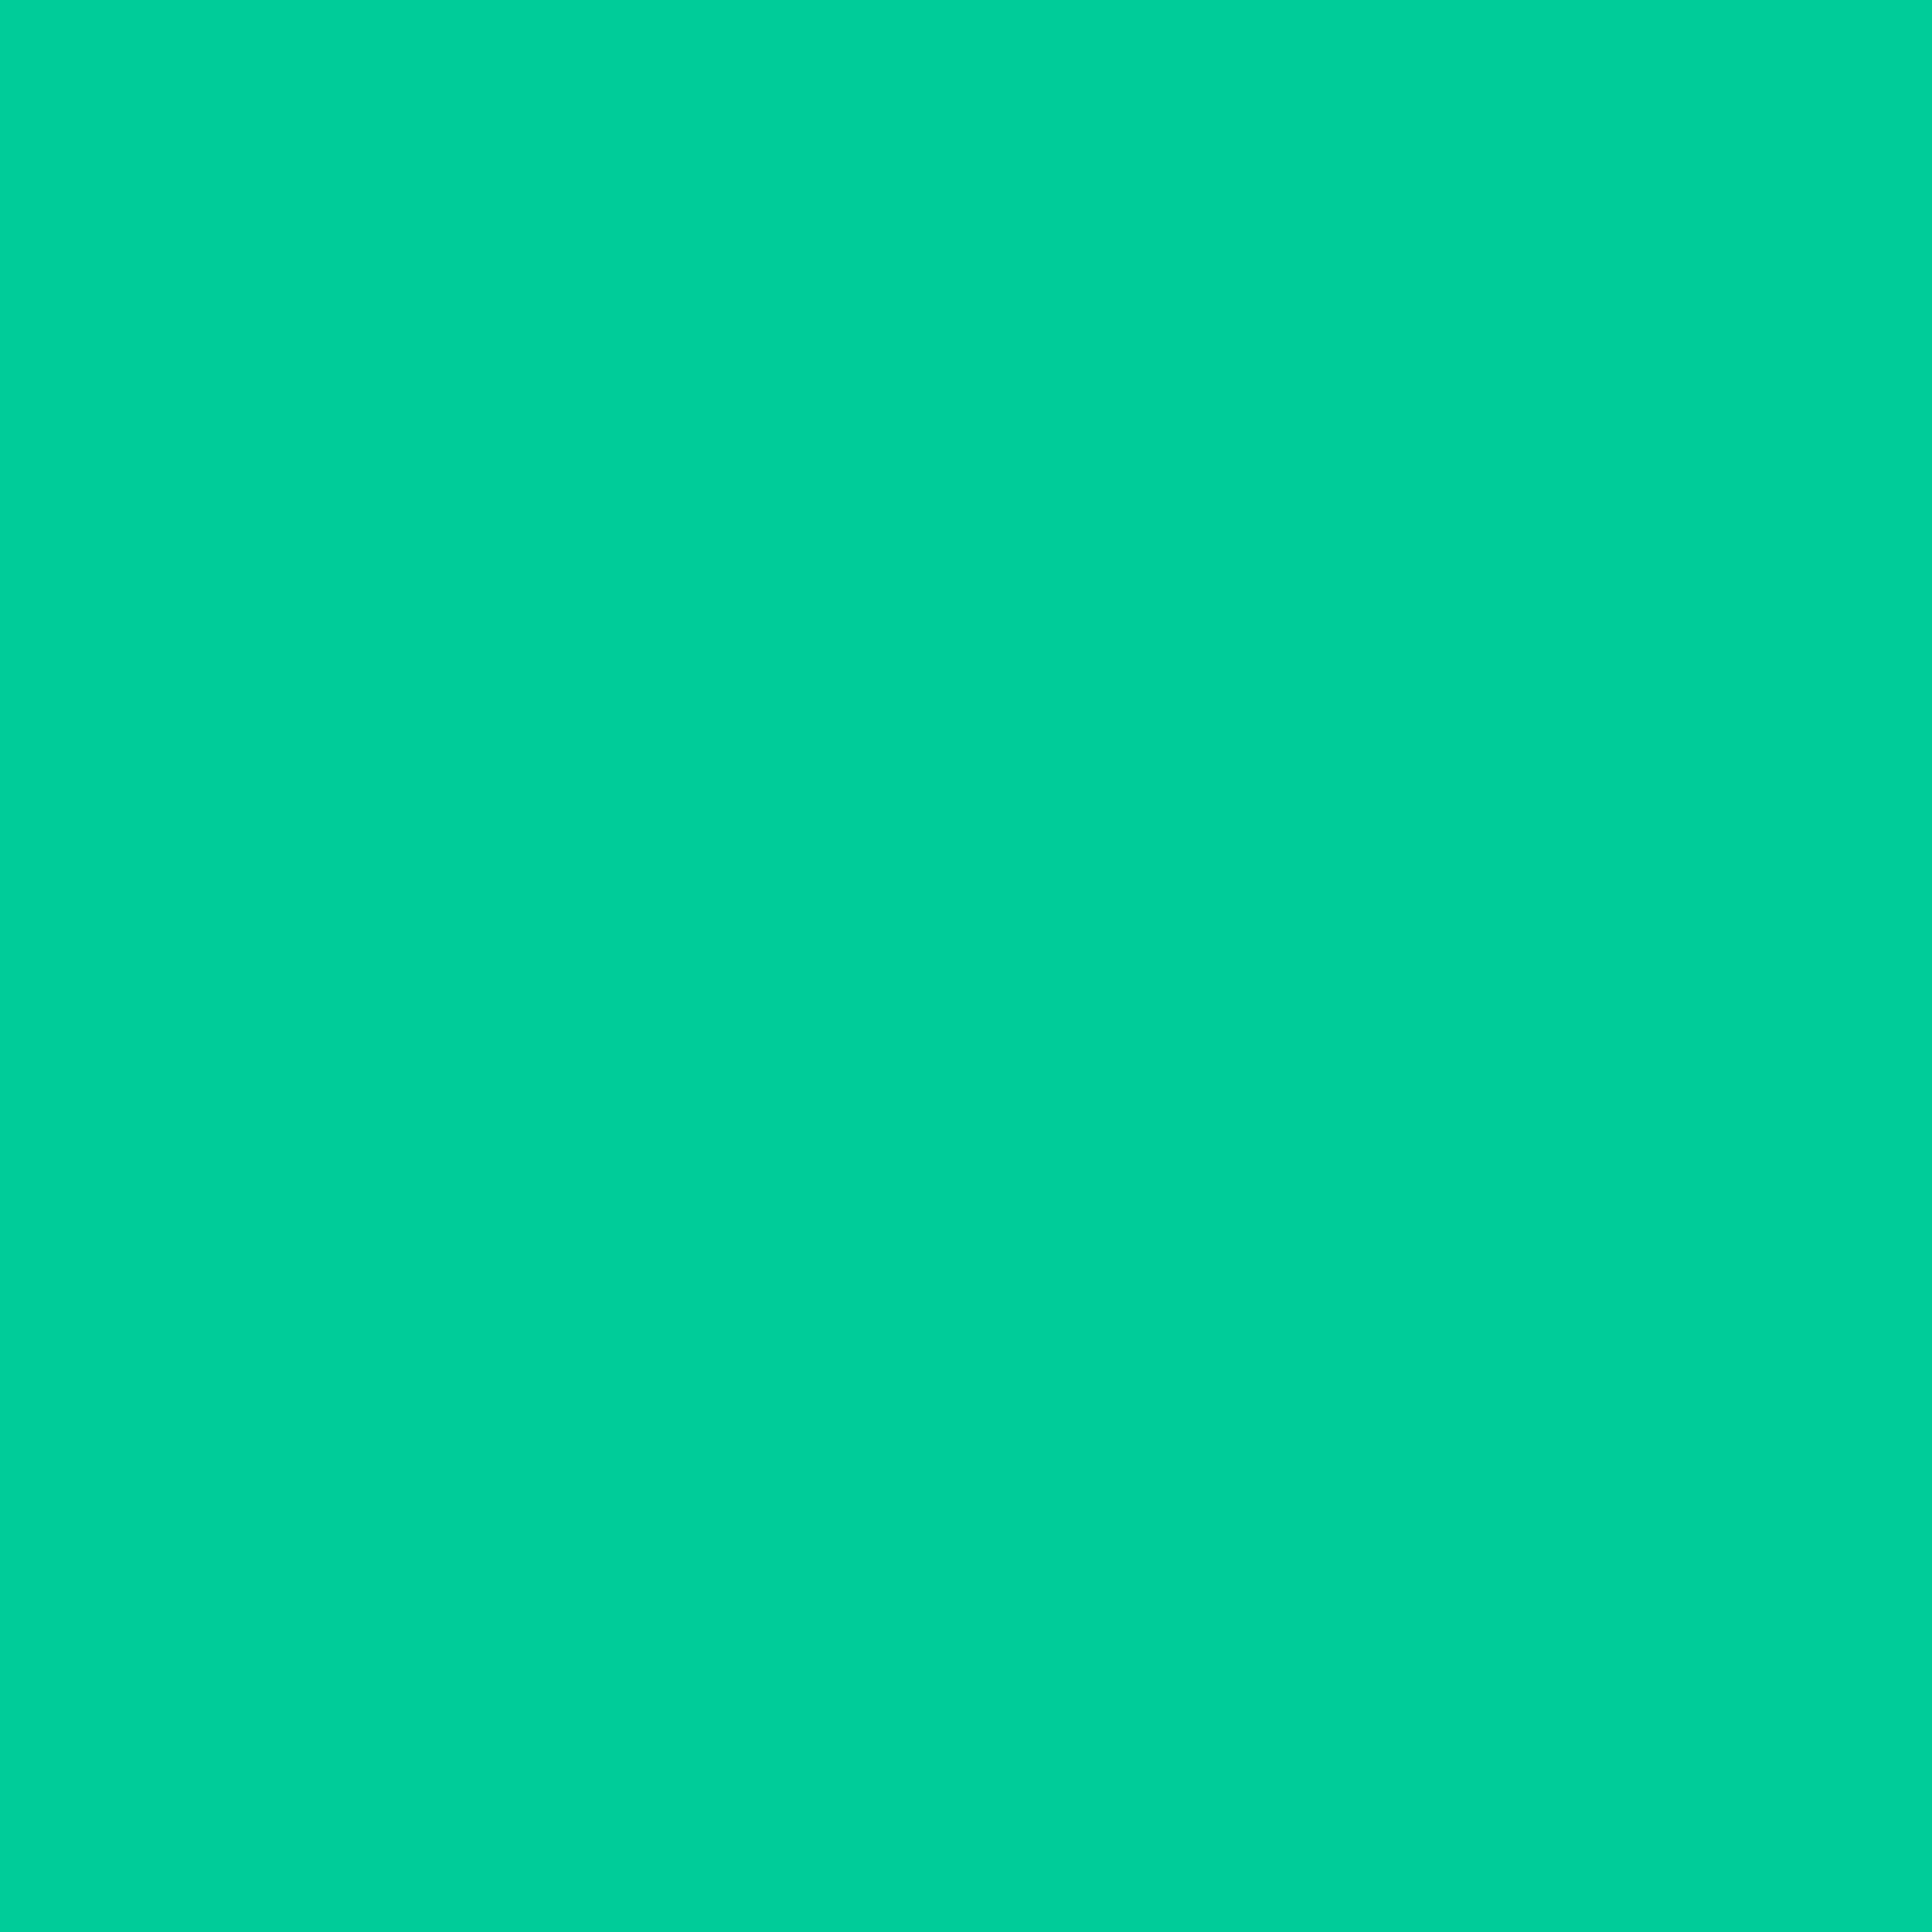 2732x2732 Caribbean Green Solid Color Background